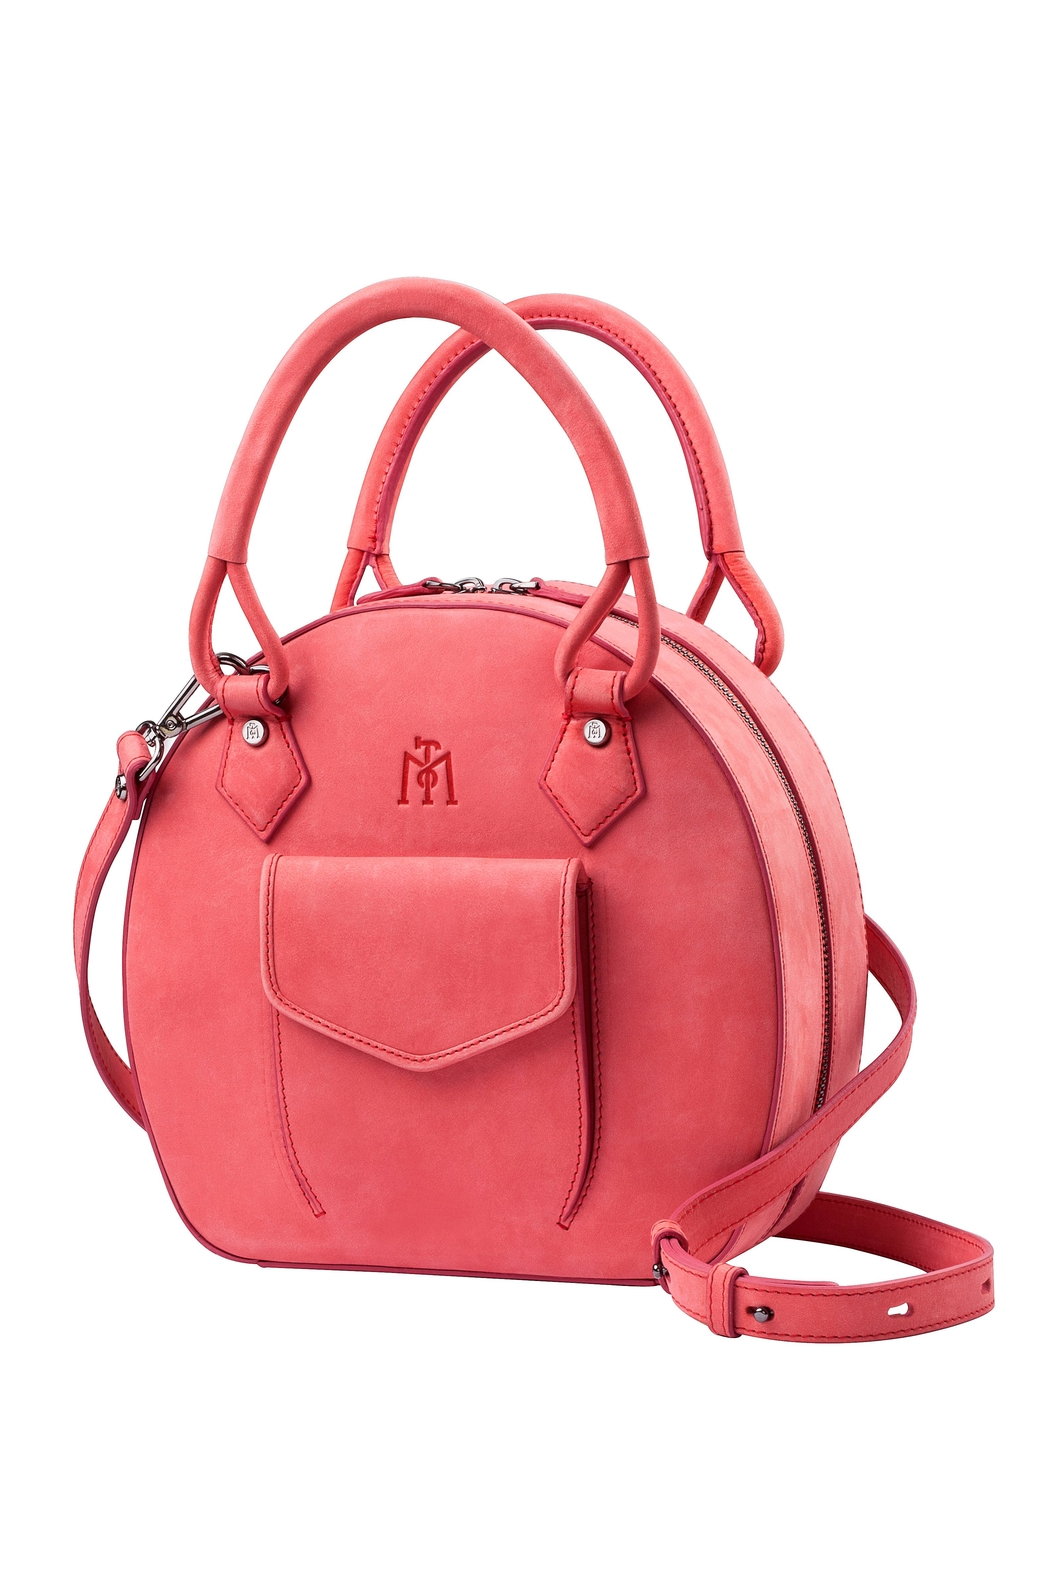 Martella Bags Coral Leather Bag - Main Image